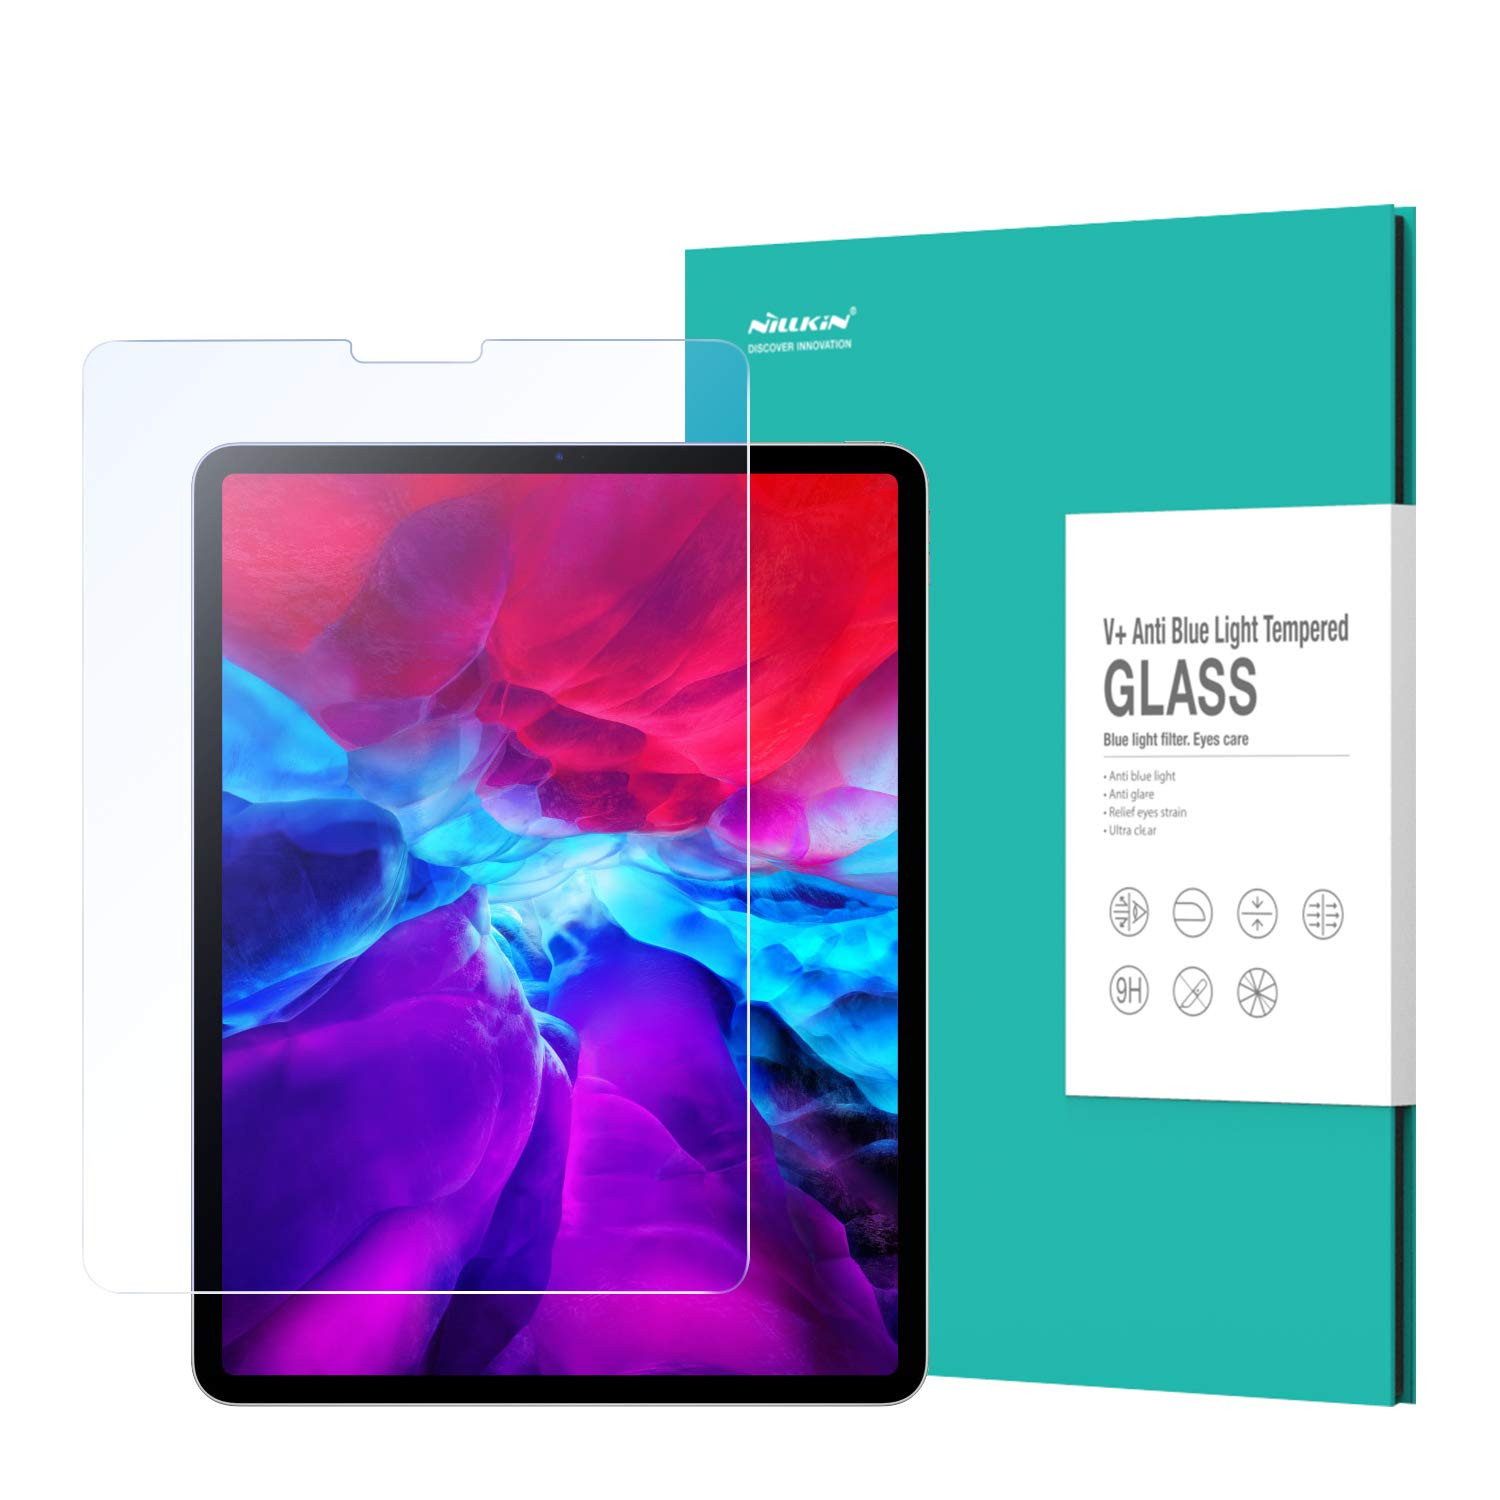 Nillkin Screen Protector for iPad Pro 12.9 inch 2020 and 2018 Model, Tempered Glass Anti Blue Light [Eye Protection], Super Guard, Anti-Scratch